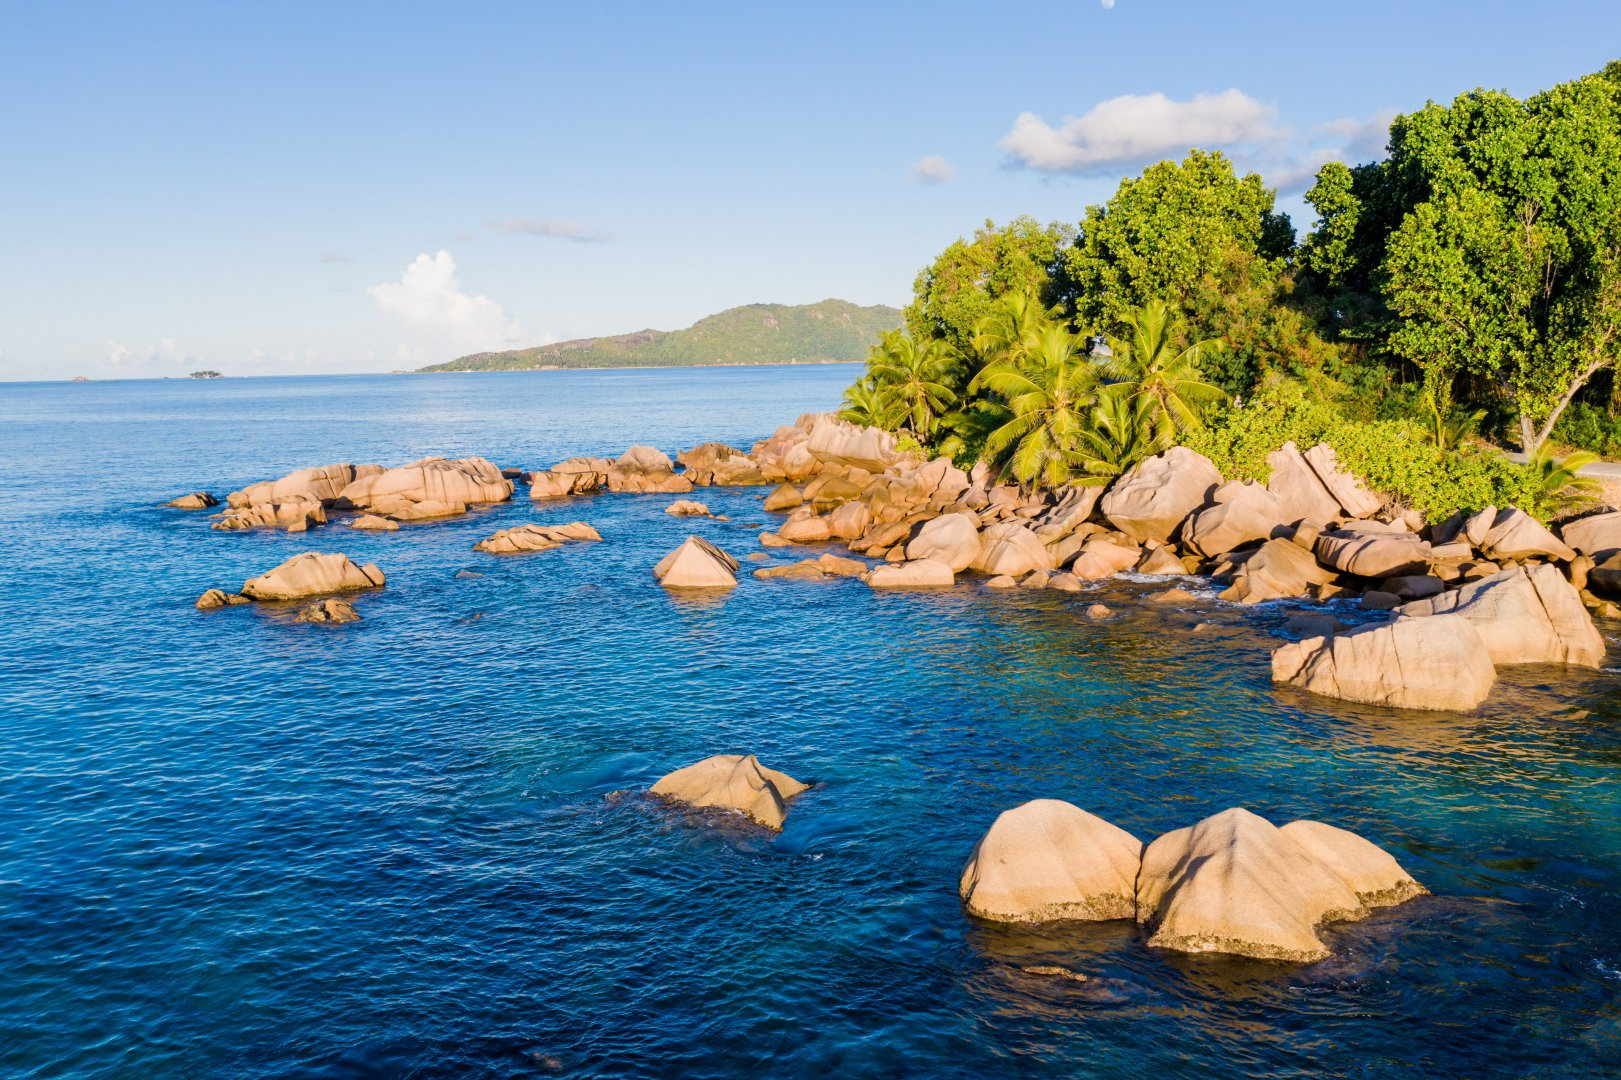 Body of water Natural landscape Sea Nature Water Coast Blue Shore Sky Ocean Rock Coastal and oceanic landforms Inlet Azure Bay Water resources Skerry Promontory Summer Cove Calm Tree Vacation Bight Beach Tropics Bank Island Watercourse Headland